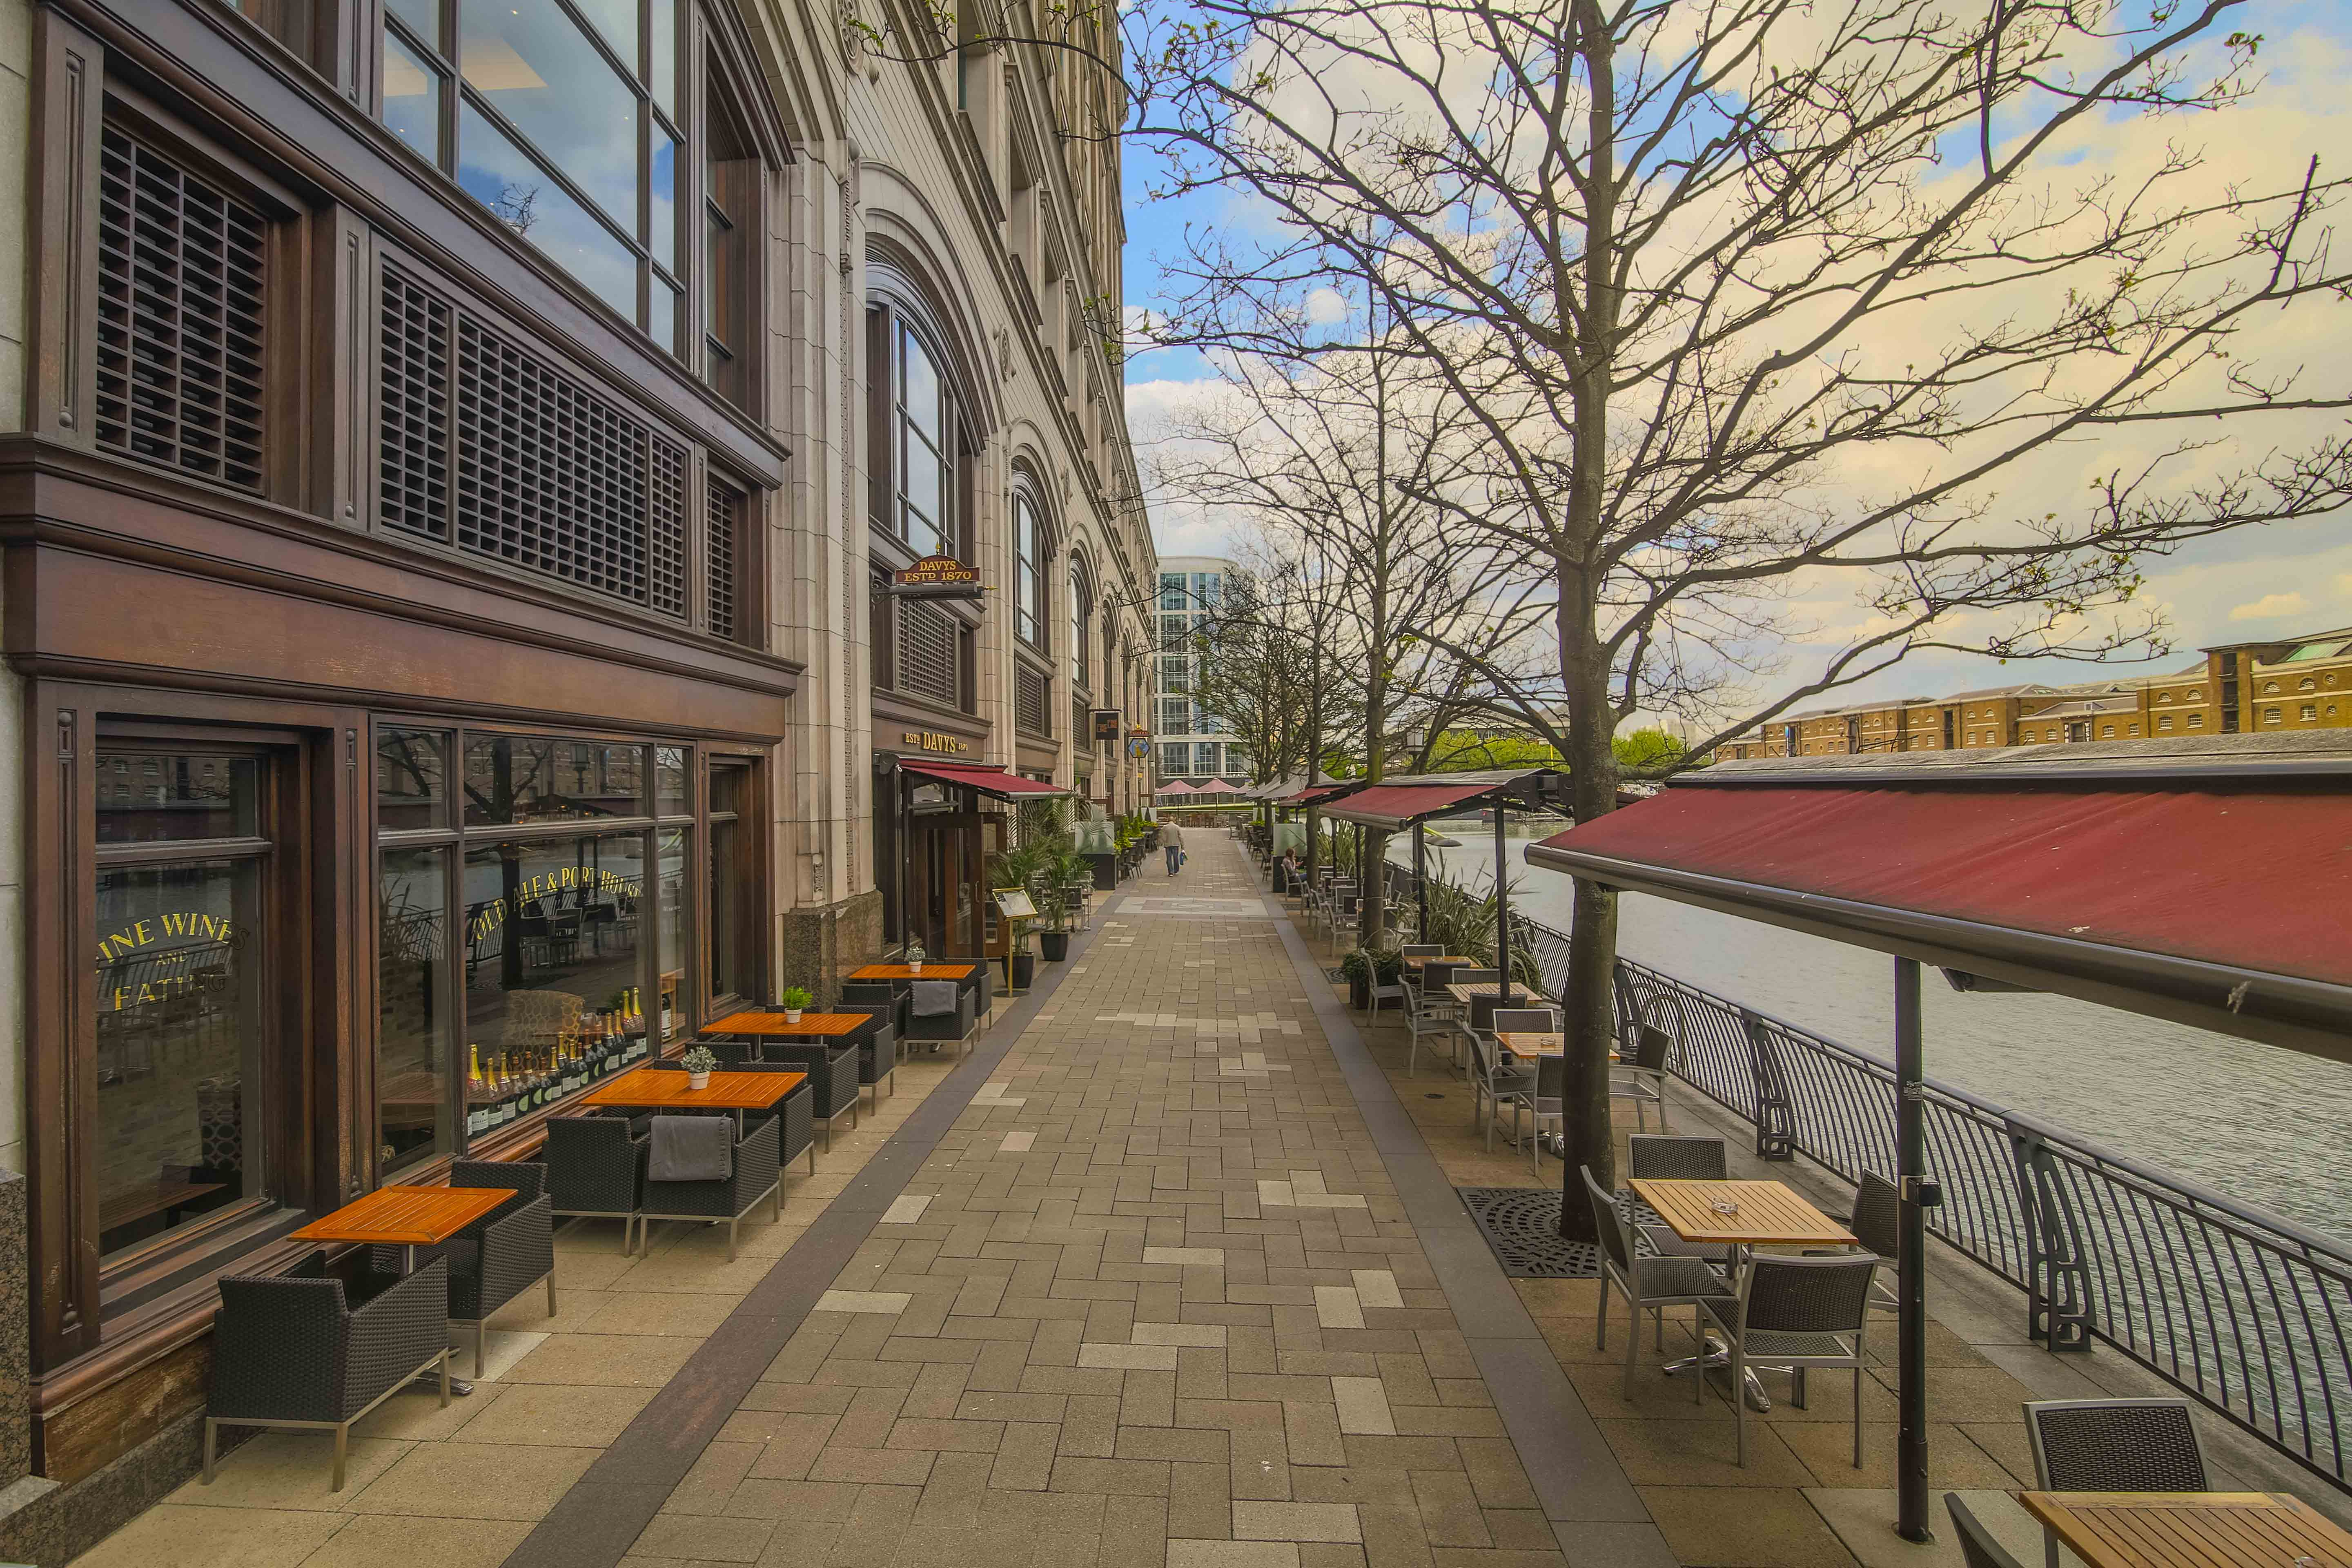 Davy's at Canary Wharf - Wine Bar & Restaurant in London